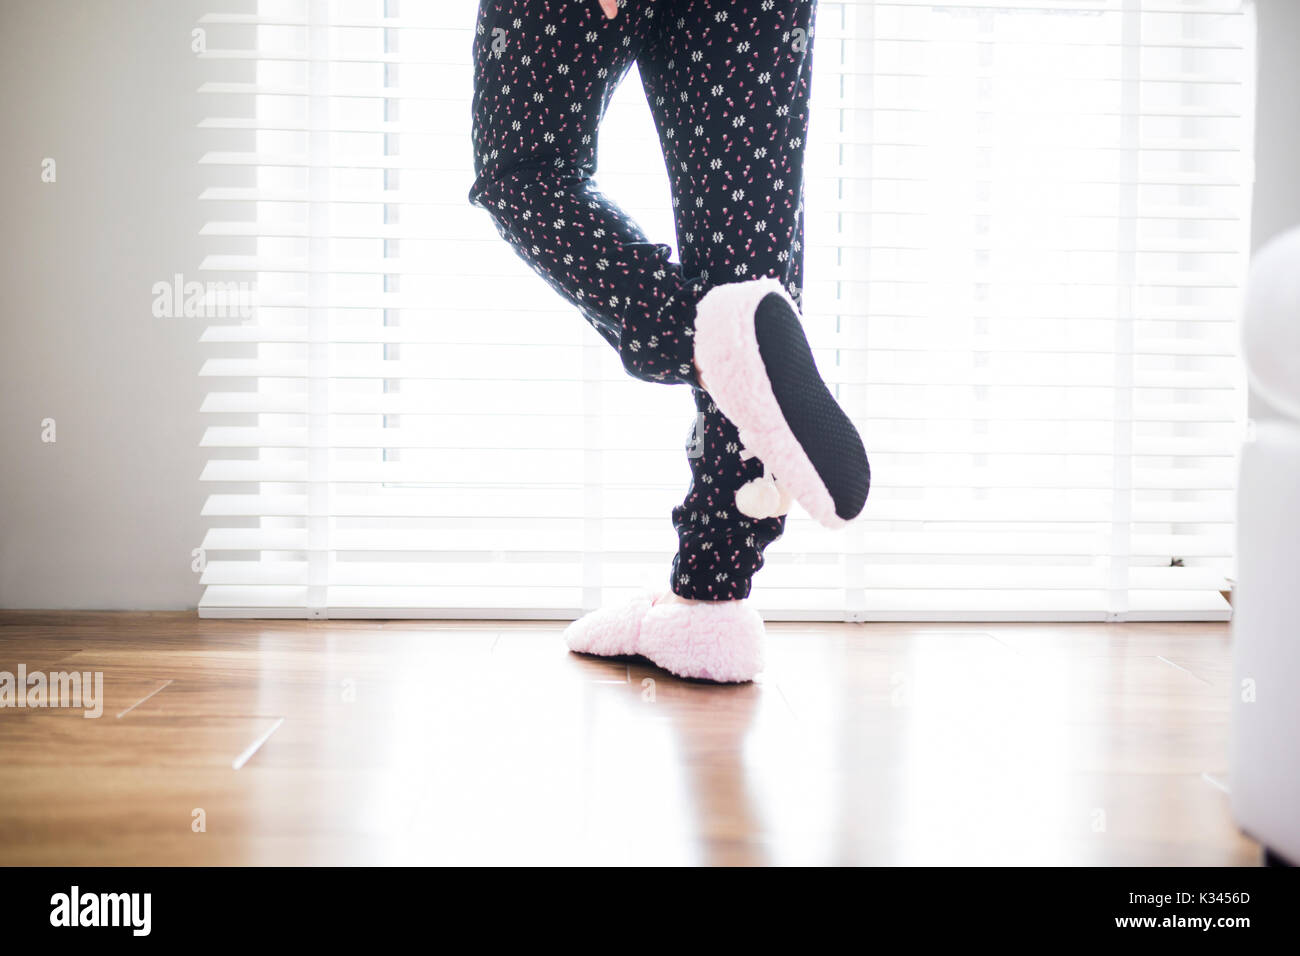 A photo of person in pajamas trousers standing on one foot. - Stock Image